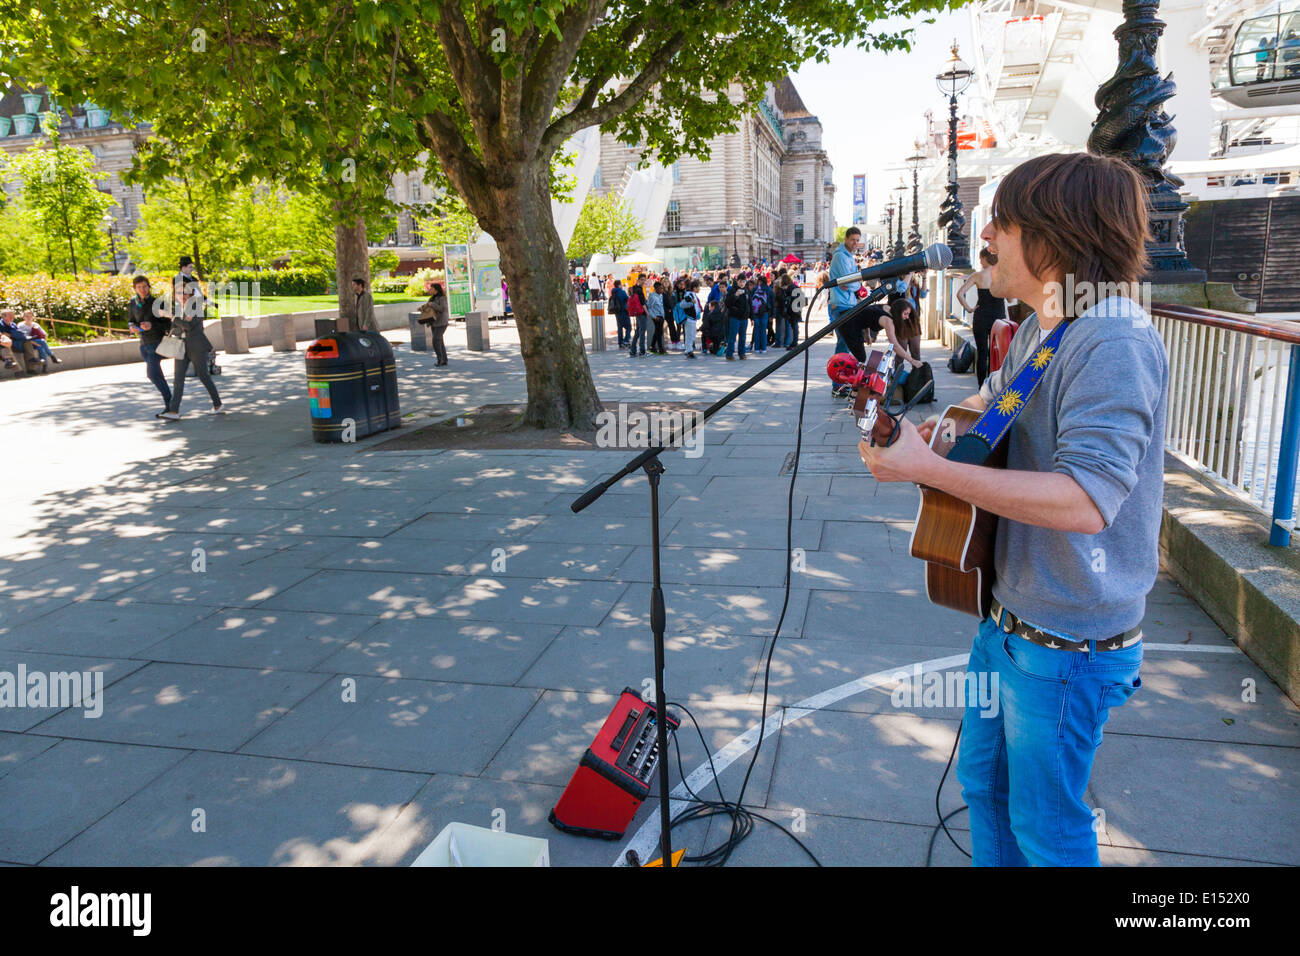 Busker playing acoustic guitar on the London embankment - Stock Image